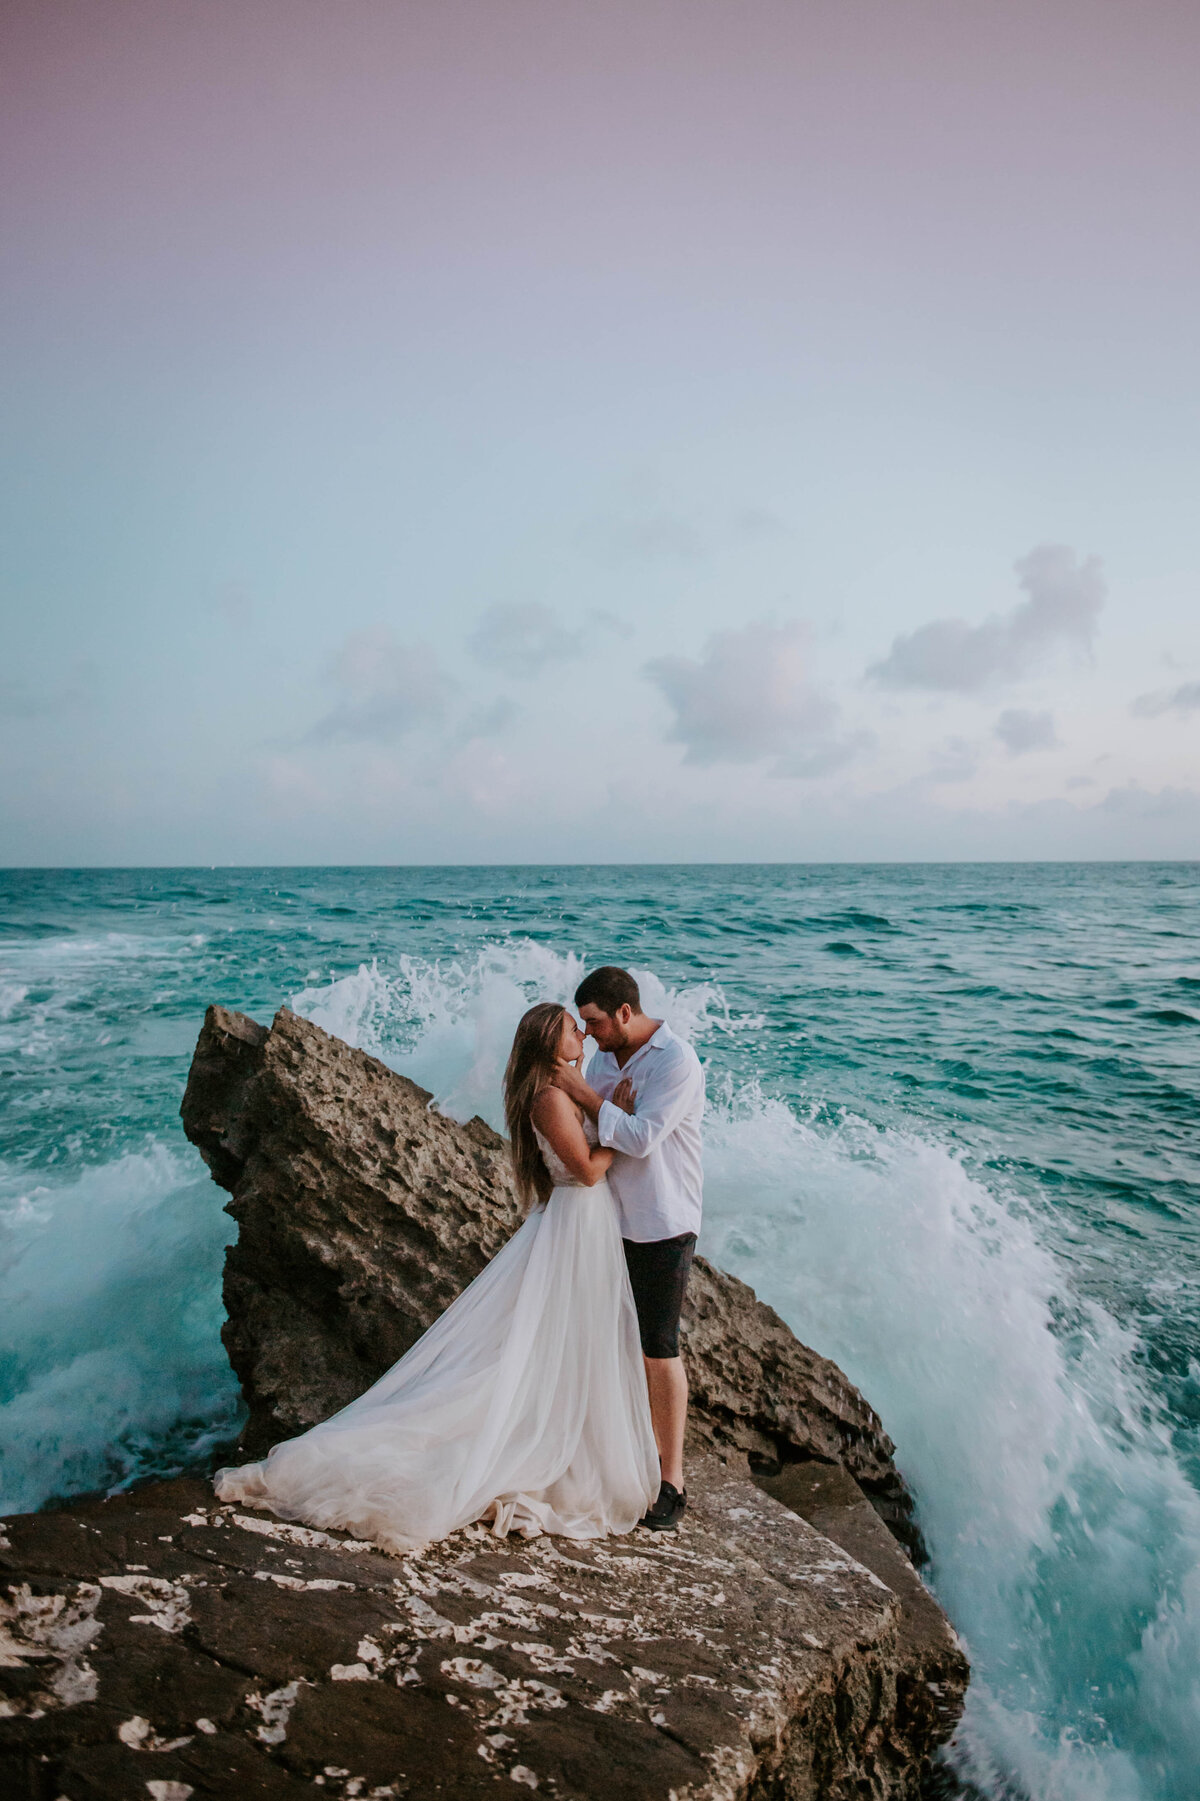 isla-mujeres-wedding-photographer-guthrie-zama-mexico-tulum-cancun-beach-destination-4021